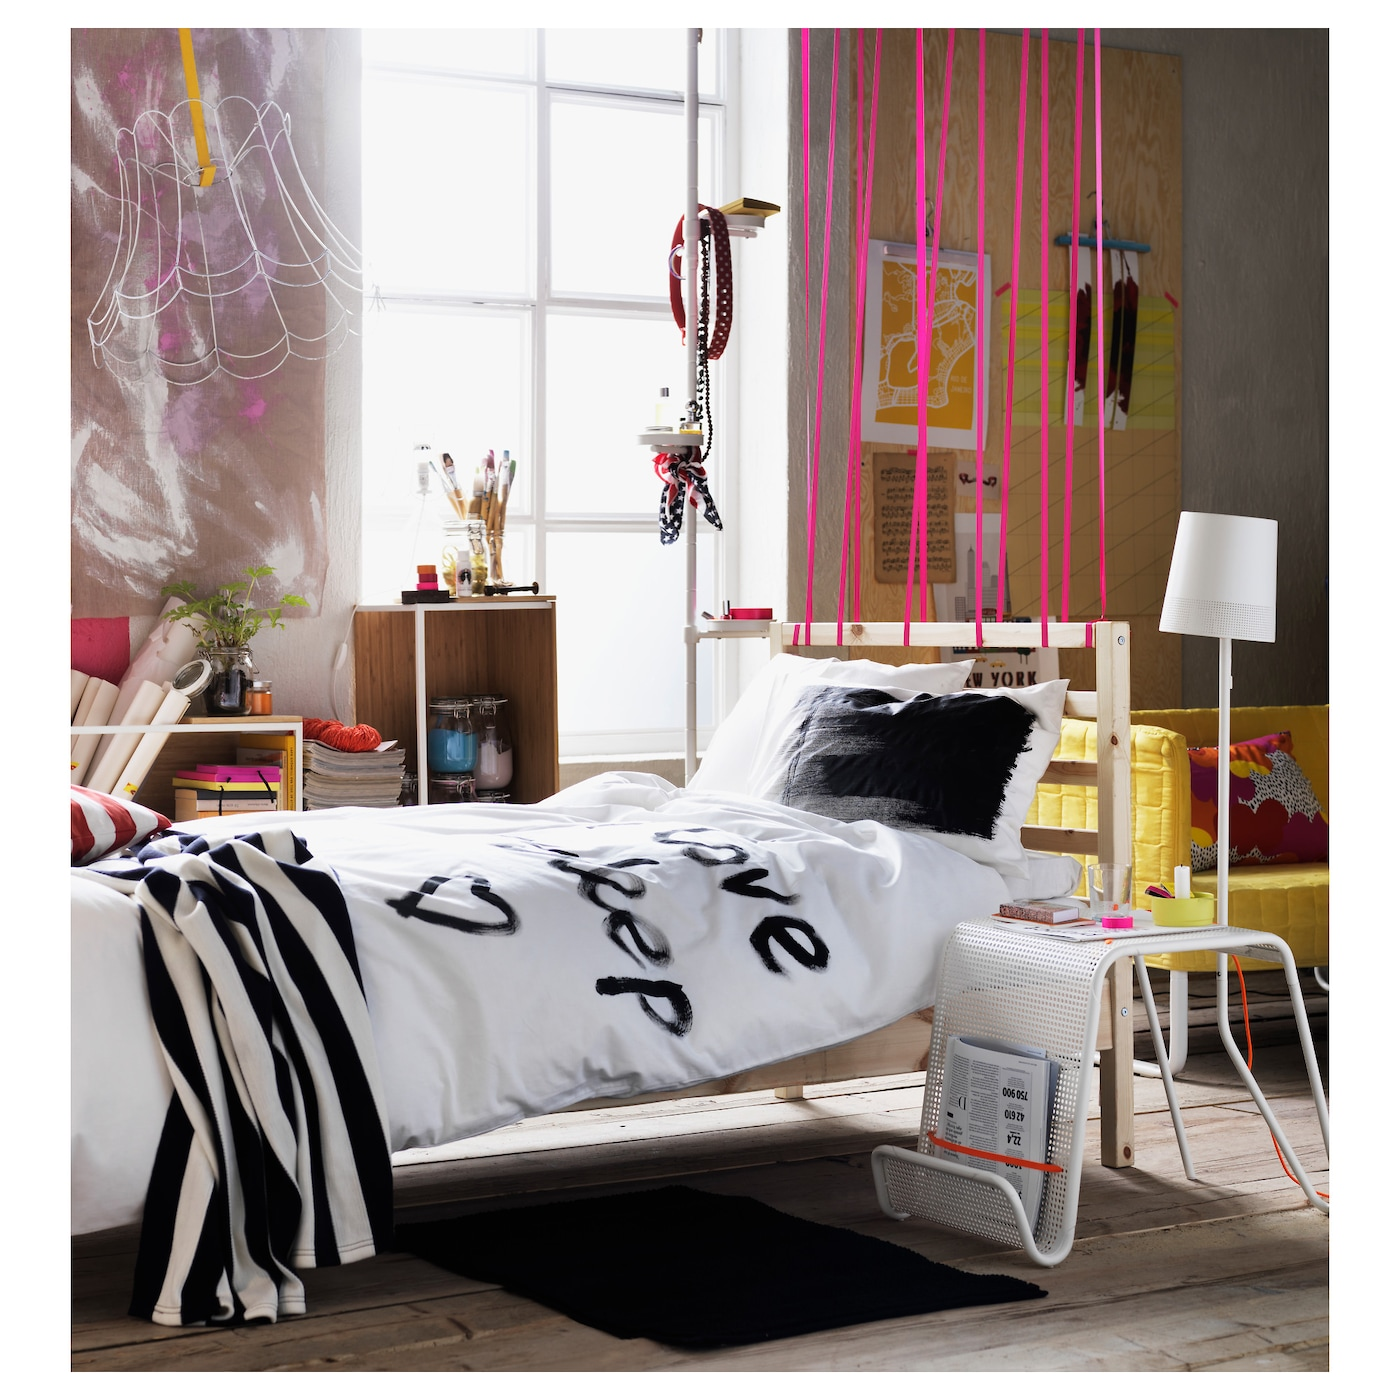 tarva cadre de lit pin l nset 90 x 200 cm ikea. Black Bedroom Furniture Sets. Home Design Ideas